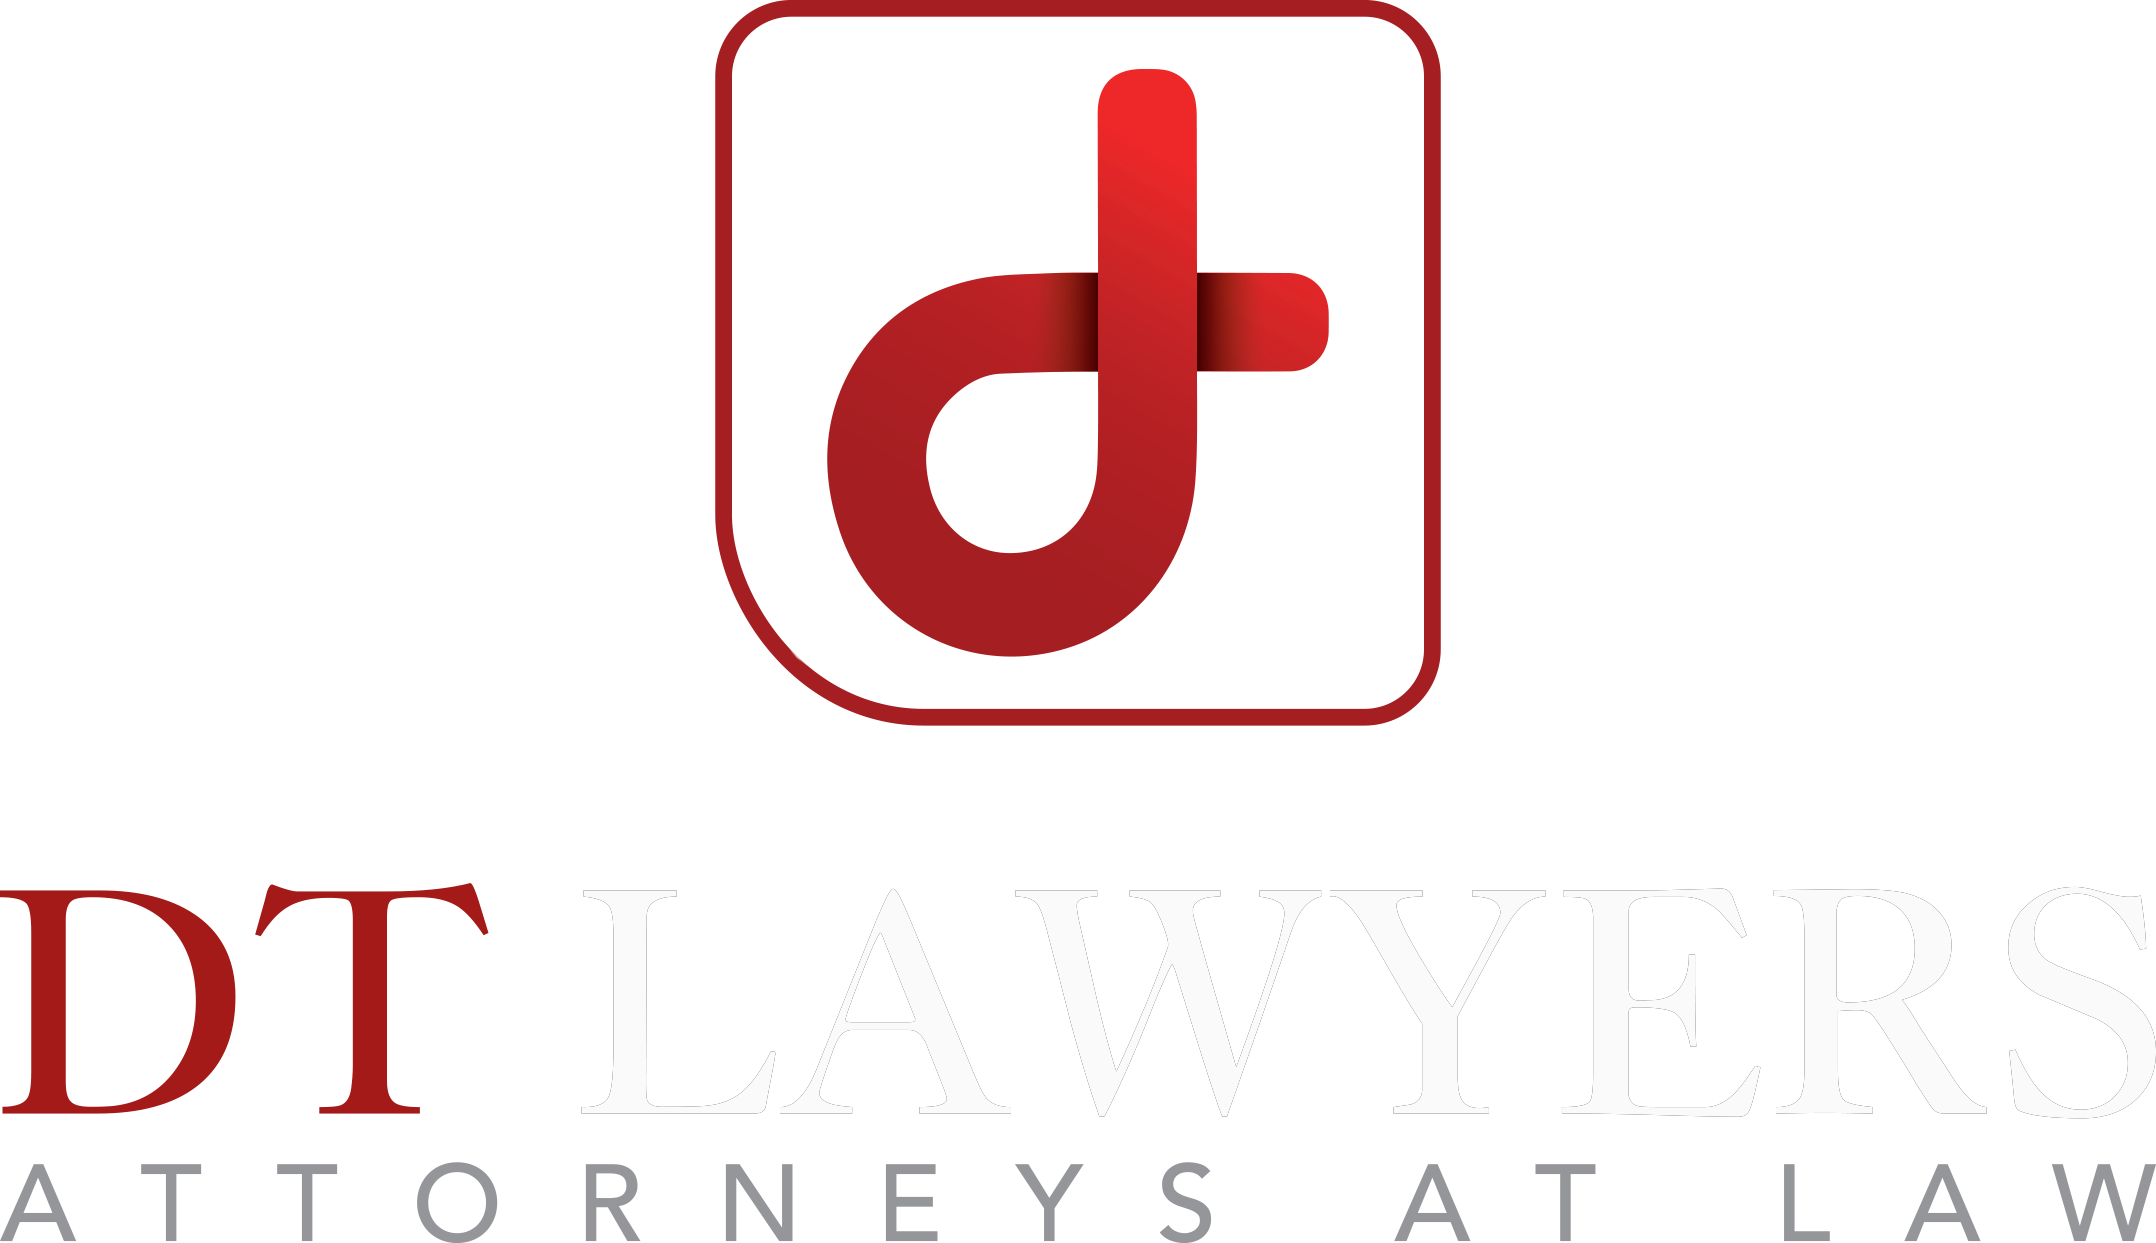 DT-2Lawyers-footer-logo-transparent-vertical